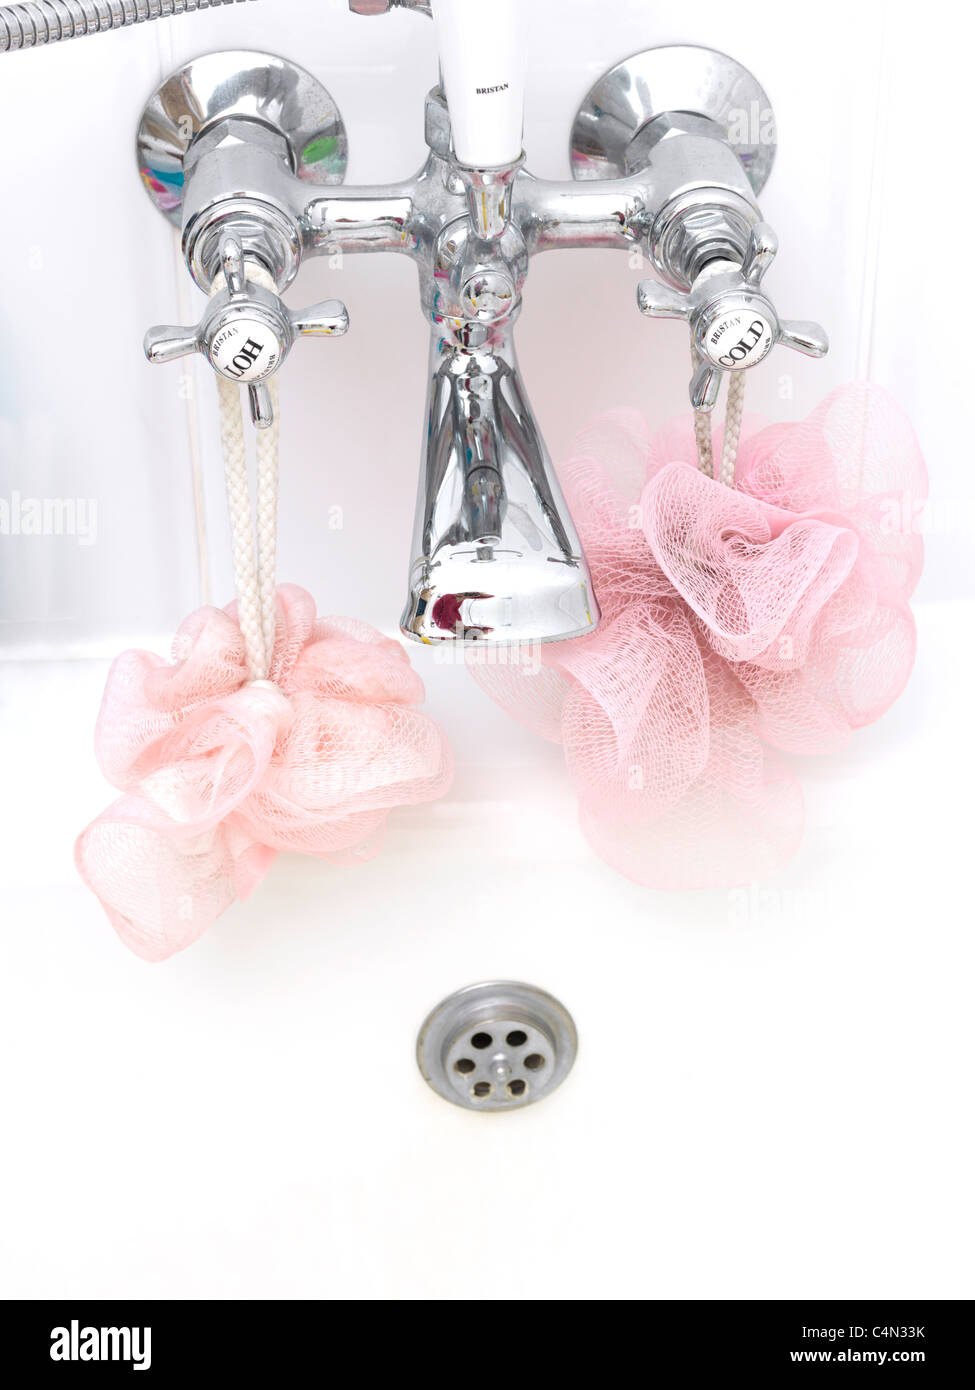 Bath Taps And Body Puffs In The Shape Of A Face Pareidolia Seeing Faces In Objects - Stock Image